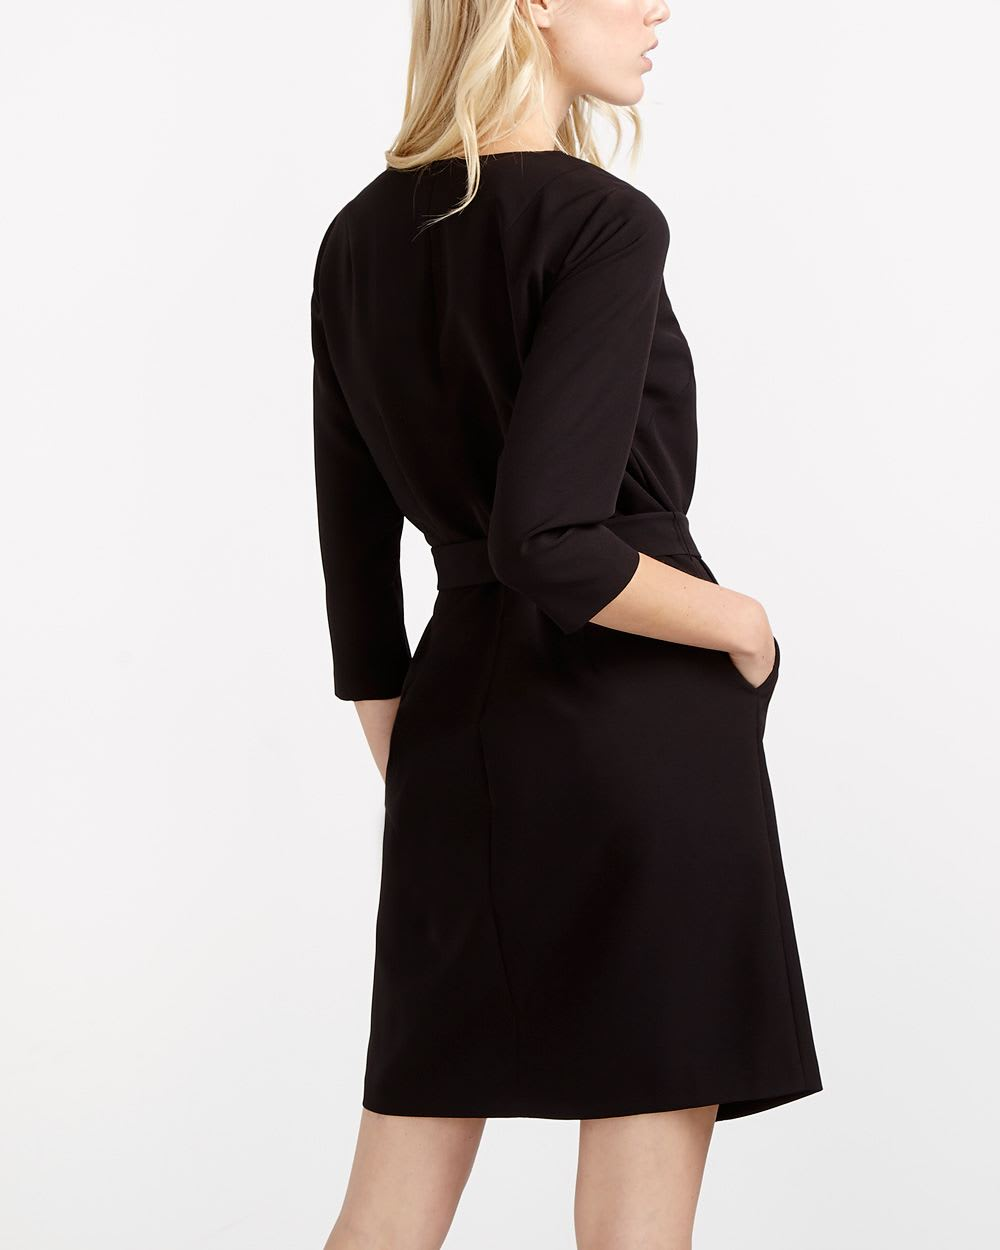 Willow & Thread ¾ Sleeve Wrap Dress